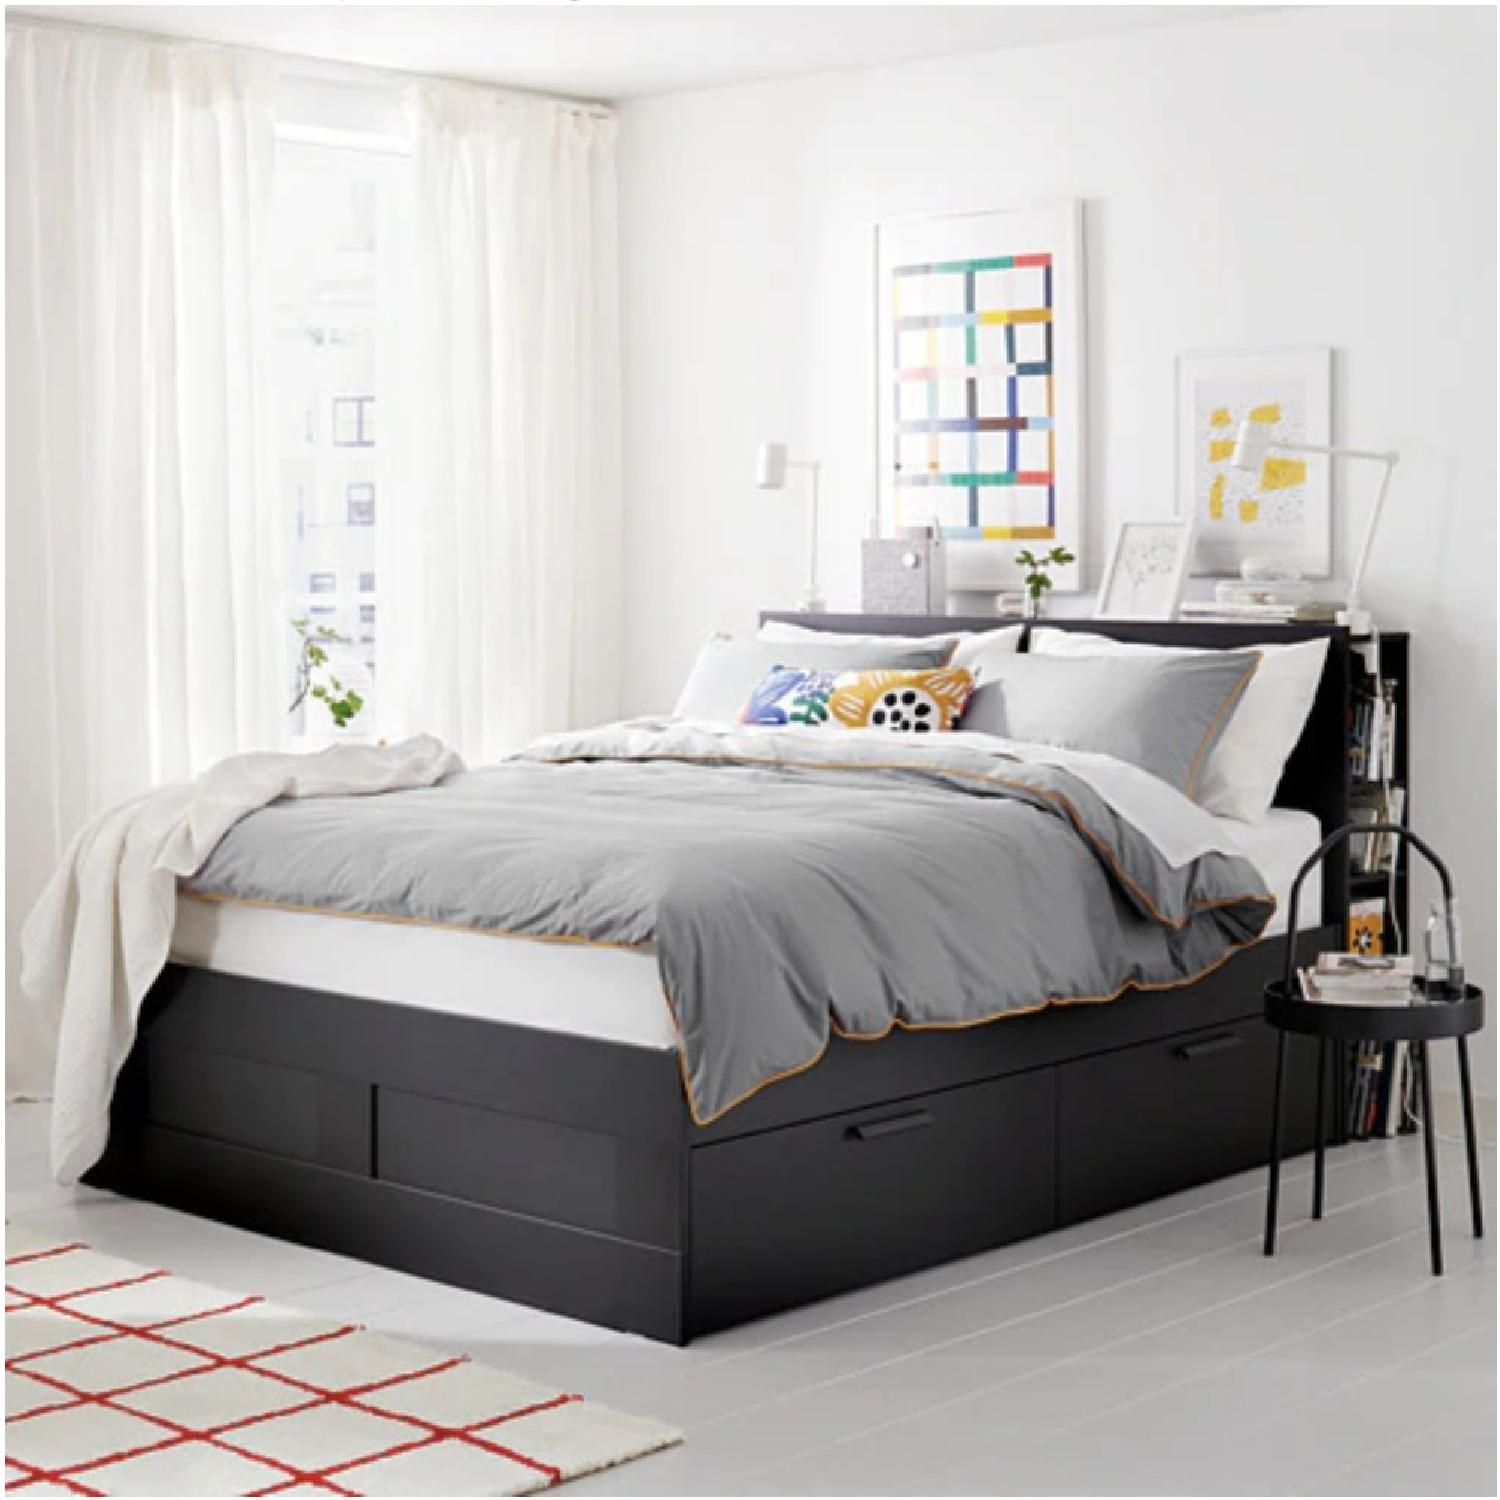 Ikea Brimnes Full Size Storage Bed w/ Storage Headboard